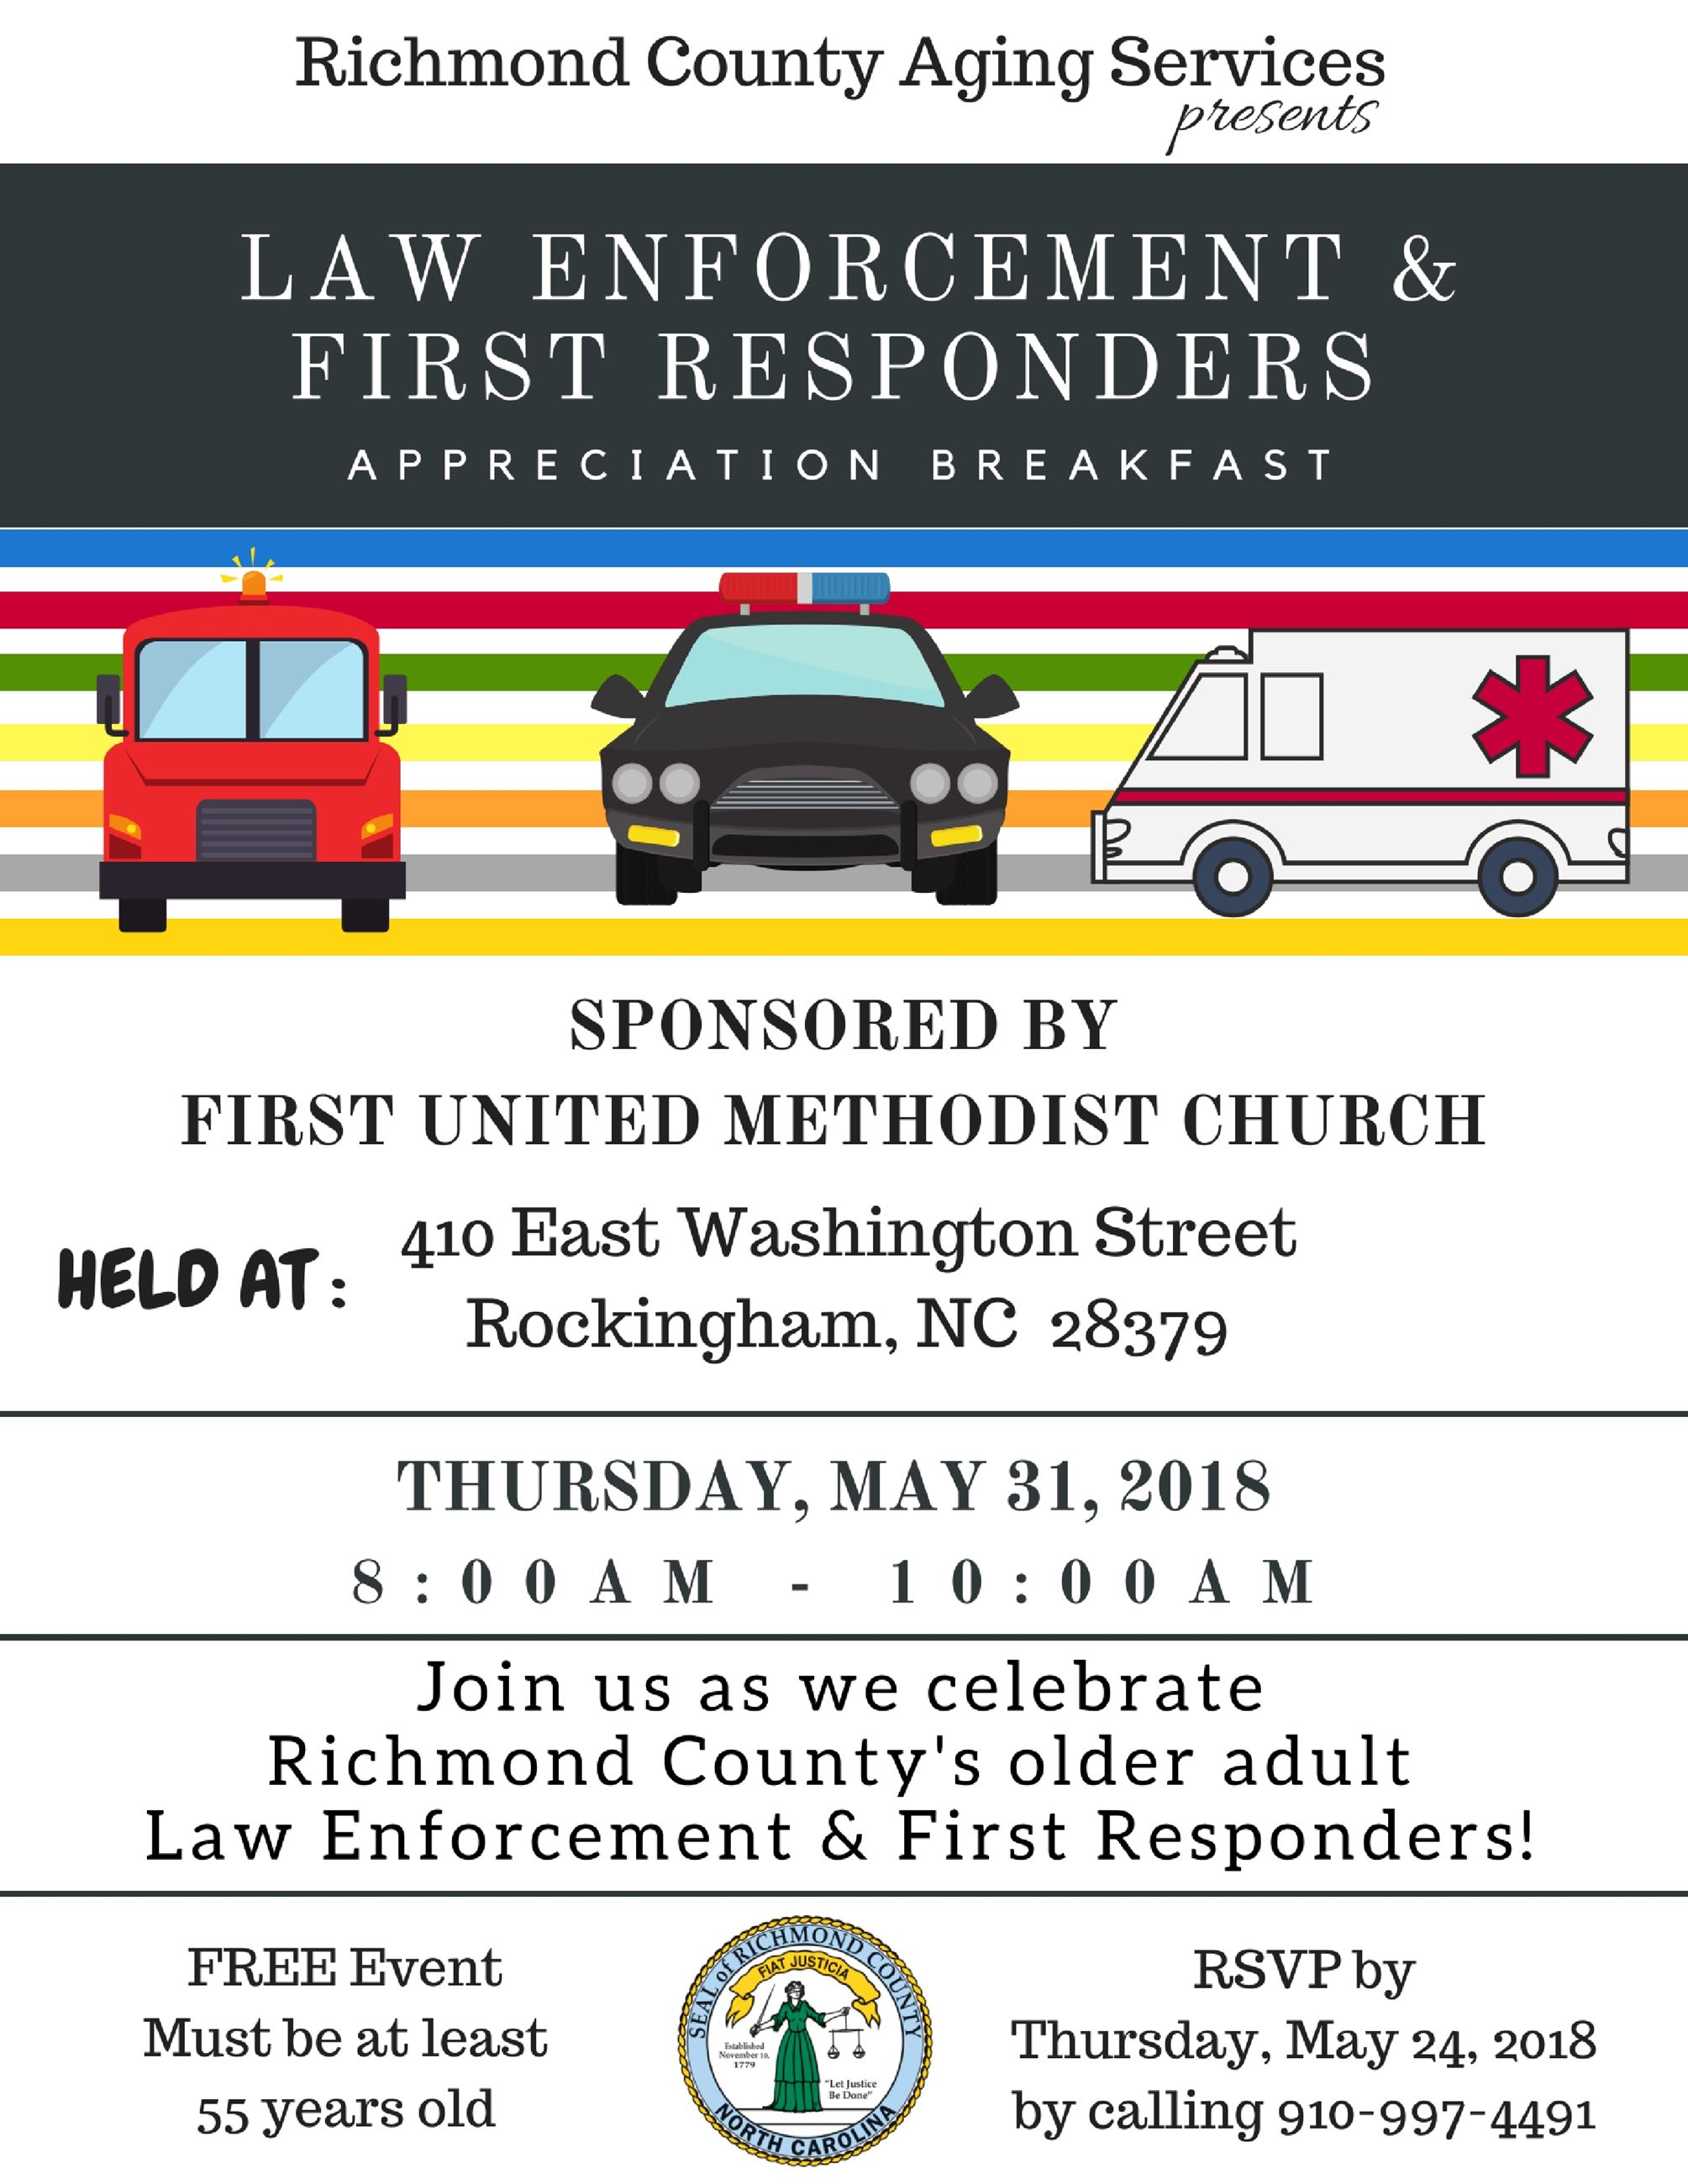 First United Methodist- Law Enforcement and First Responders Breakfast 5-31-18